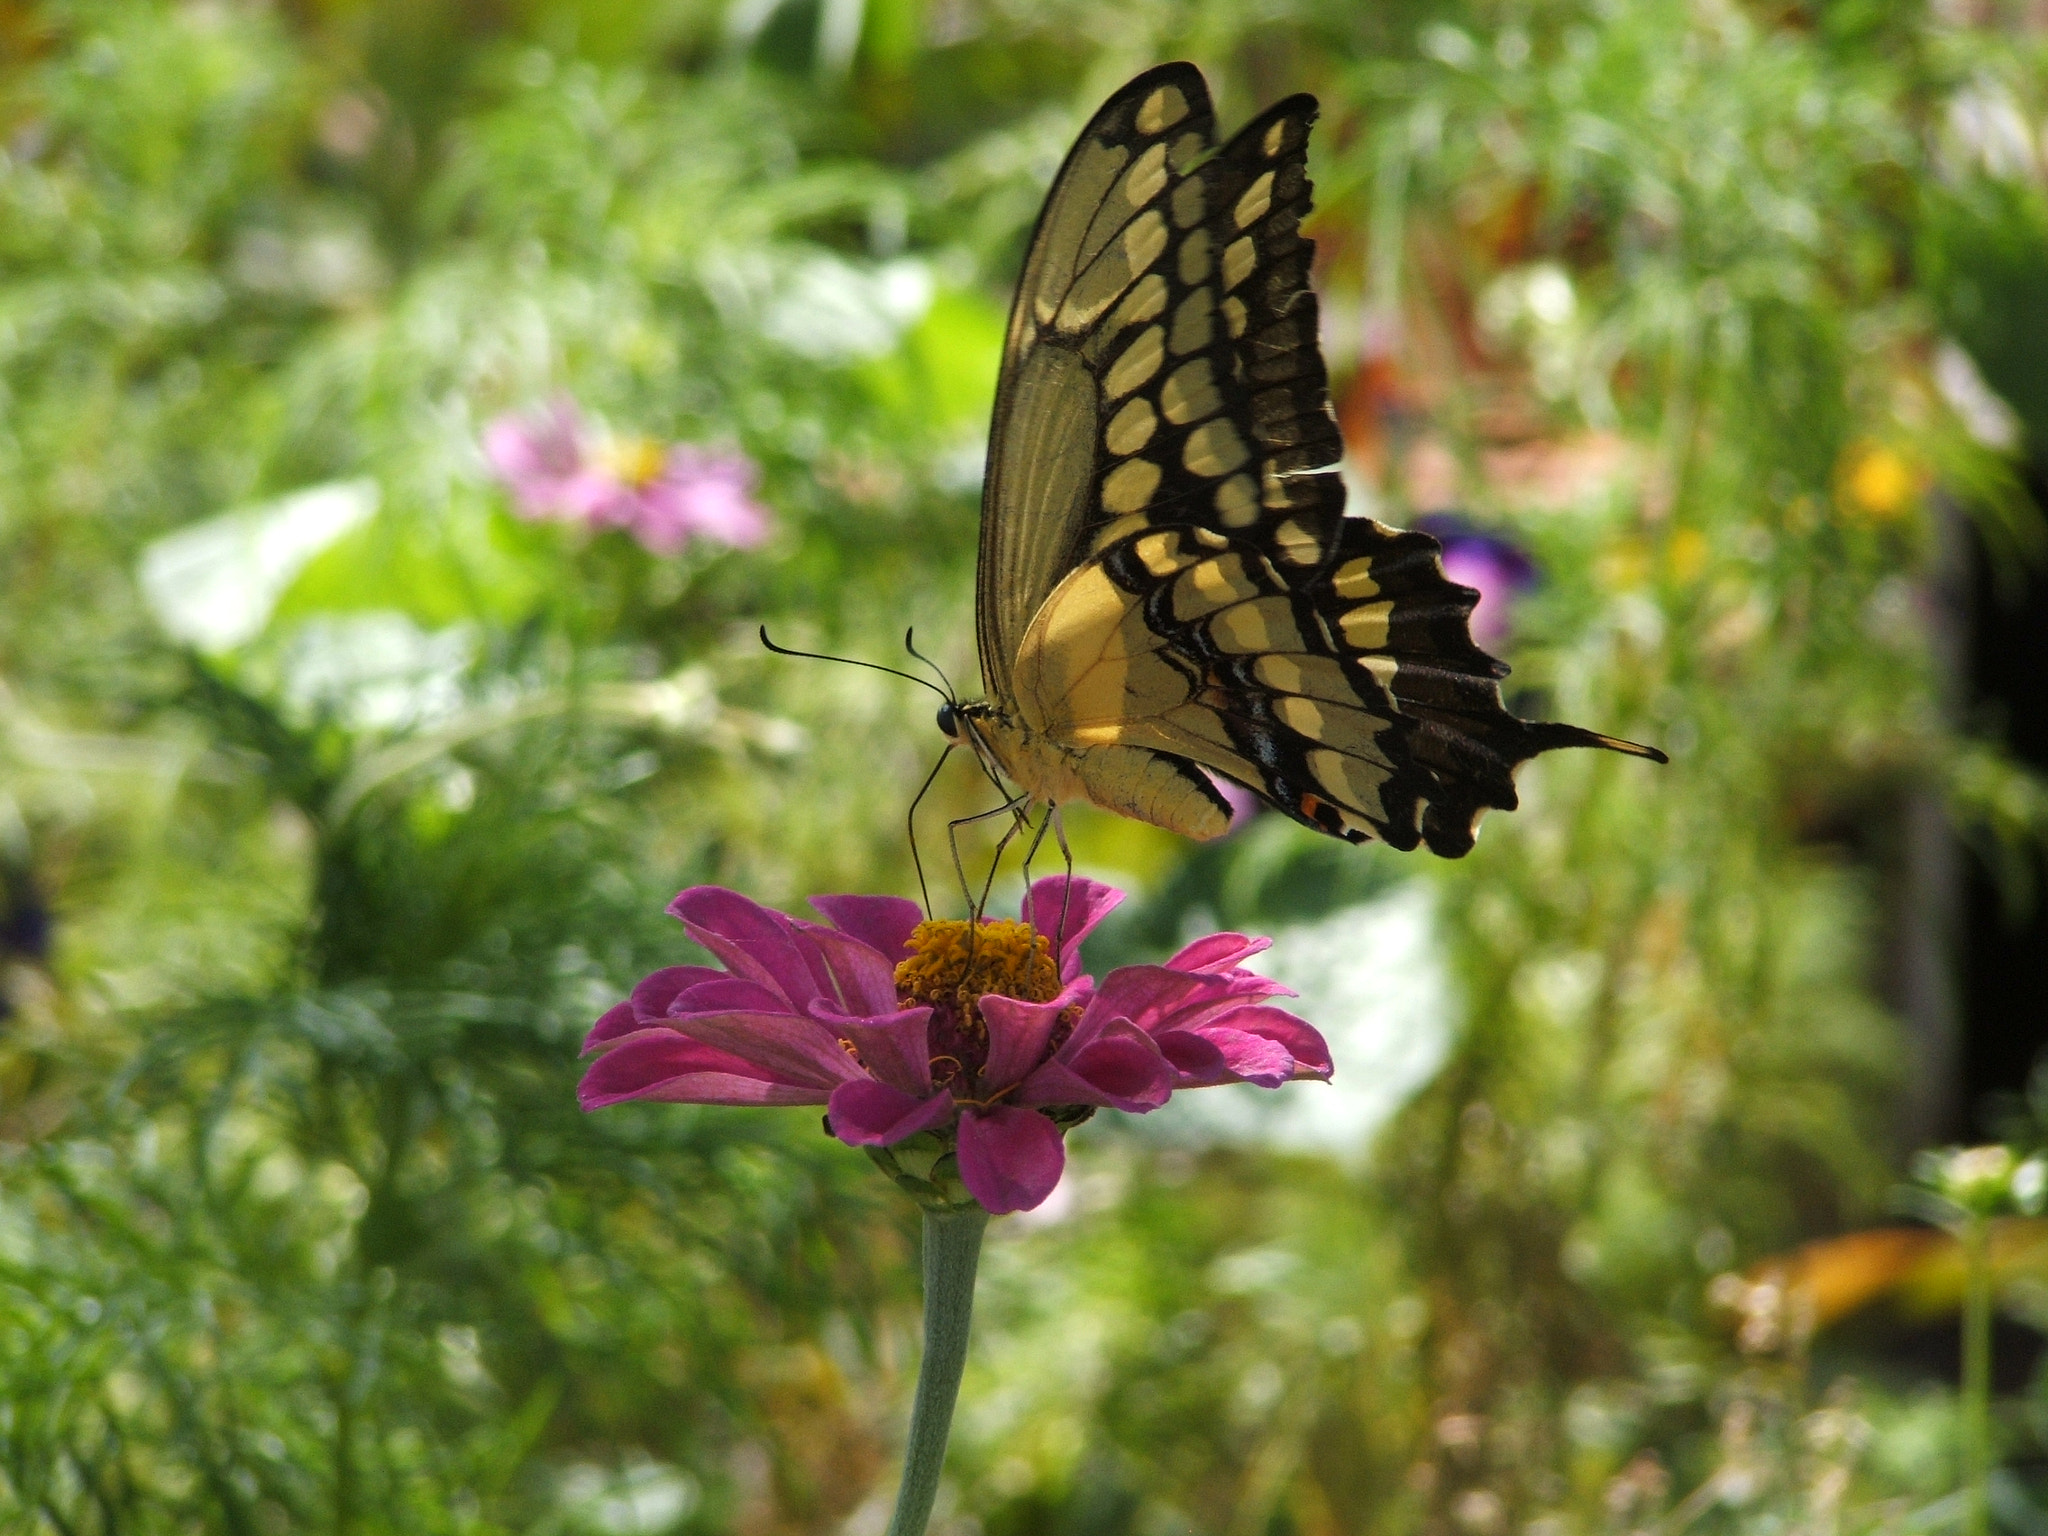 Photograph Giant Swallowtail butterfly by Megan R. Hoover on 500px